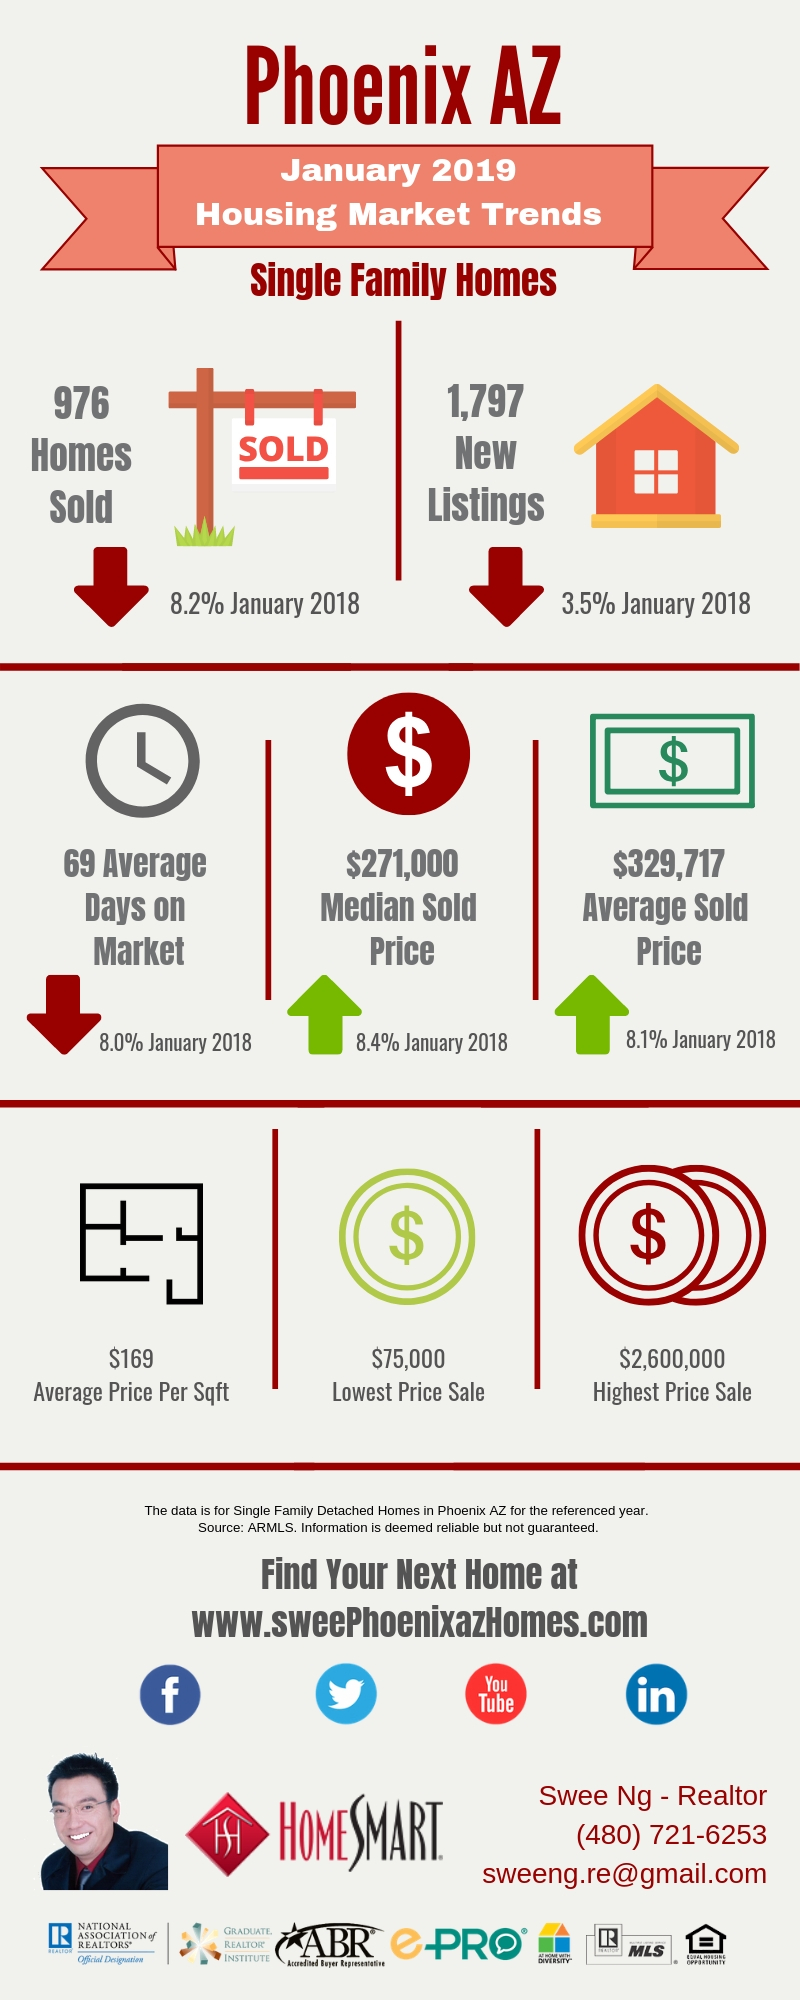 Phoenix AZ Housing Market Trends Report January 2019 by Swee Ng